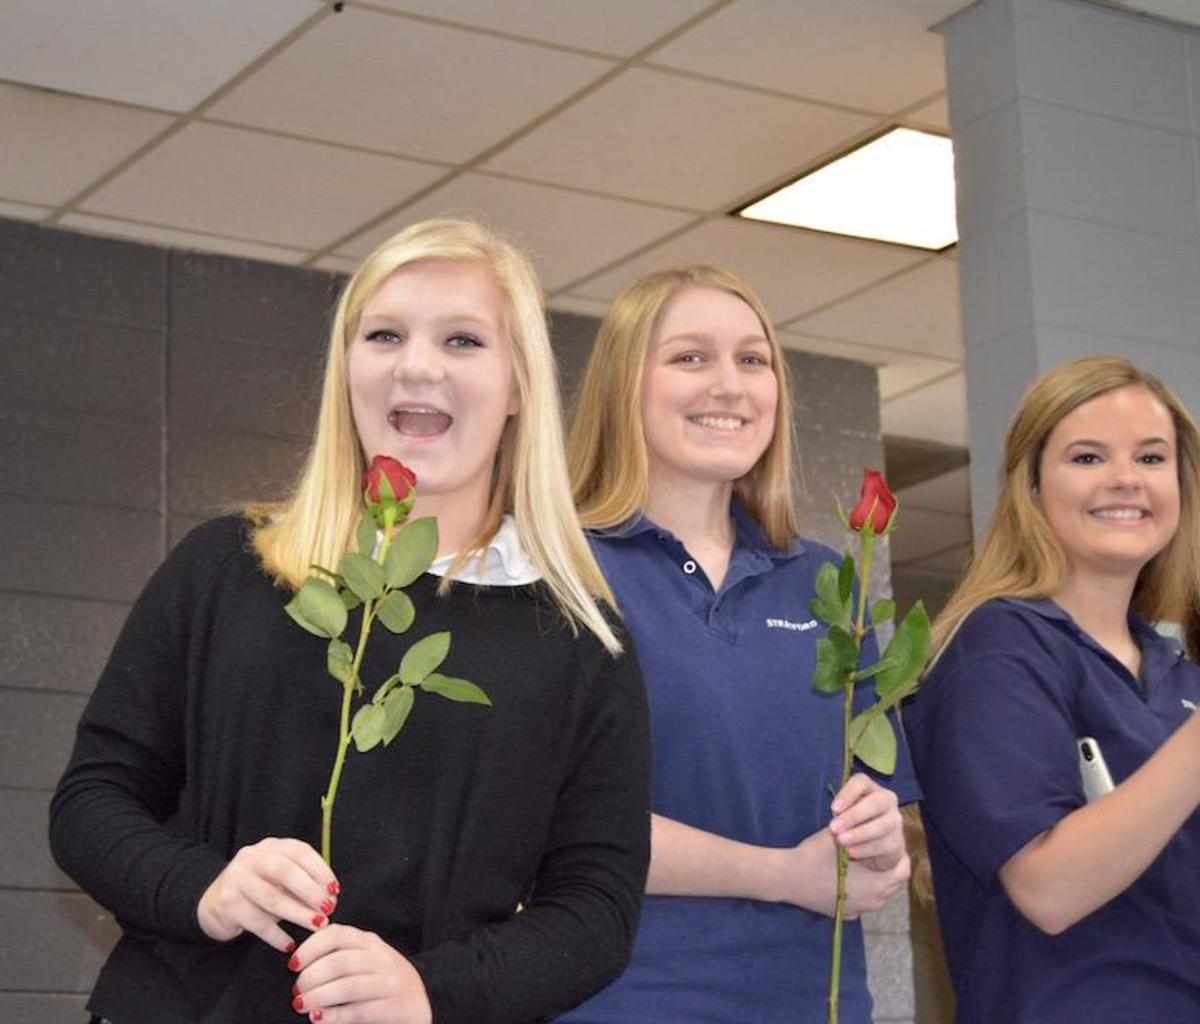 Valentine Sweethearts announced on special day